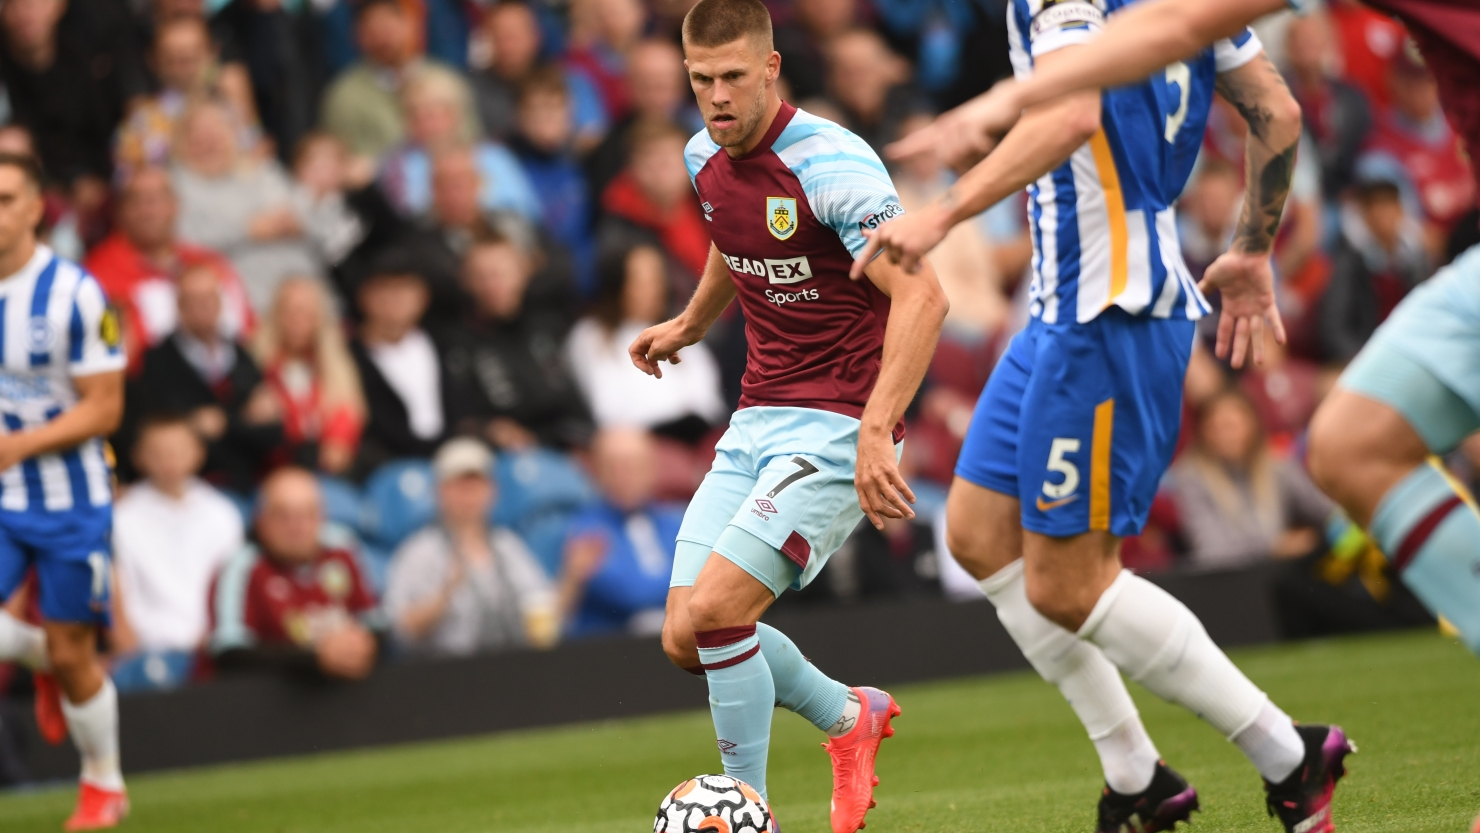 GUDMUNDSSON: WE ARE GOING TO TRY MAKE IT DIFFICULT